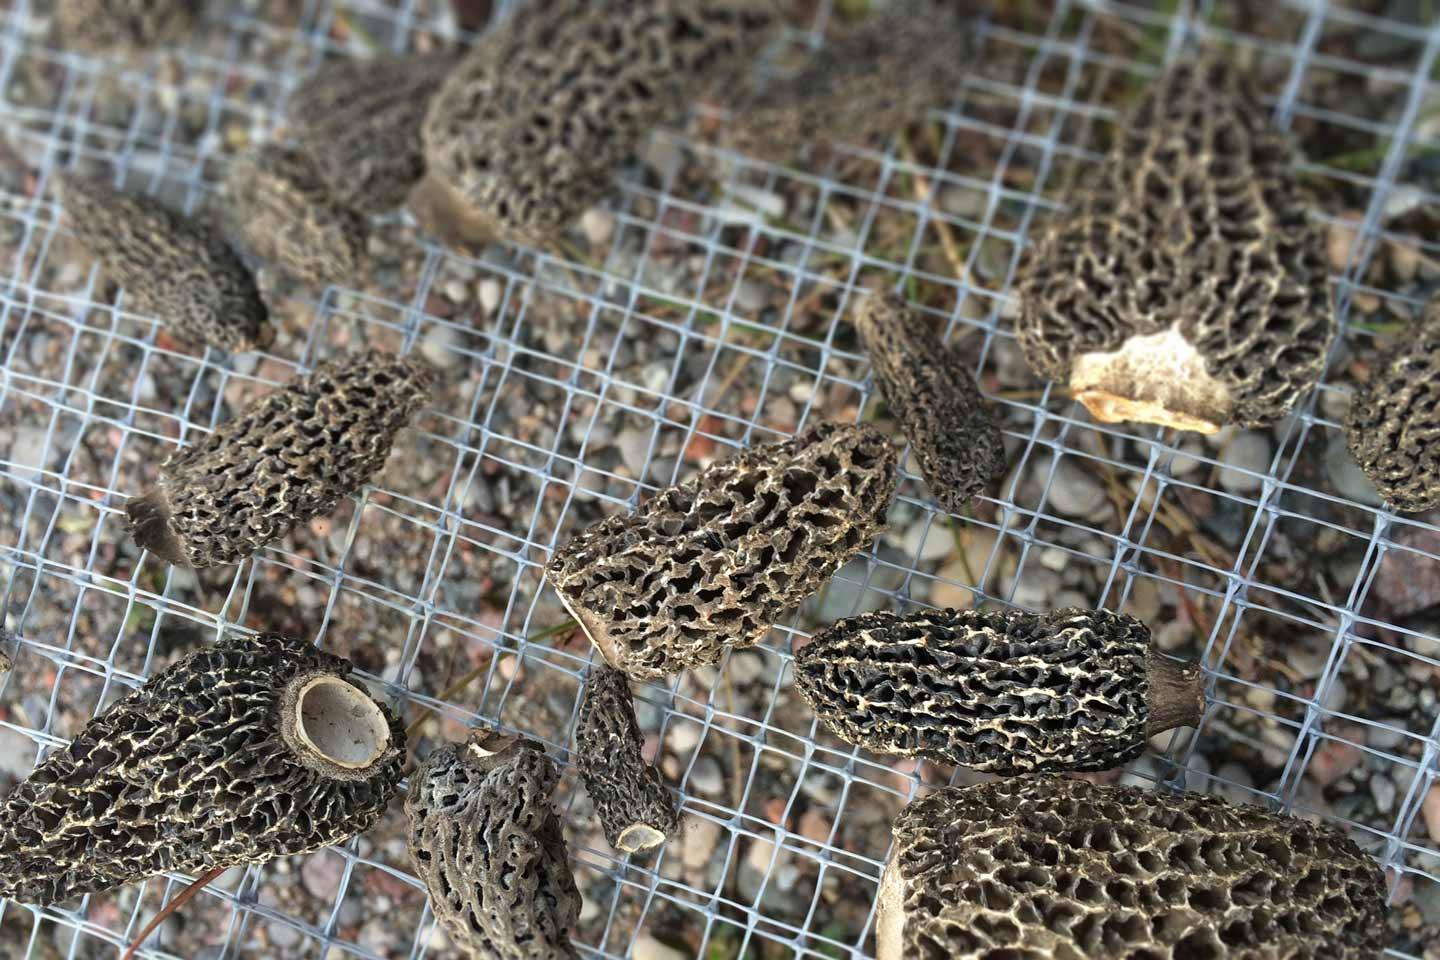 Morels drying in the sun